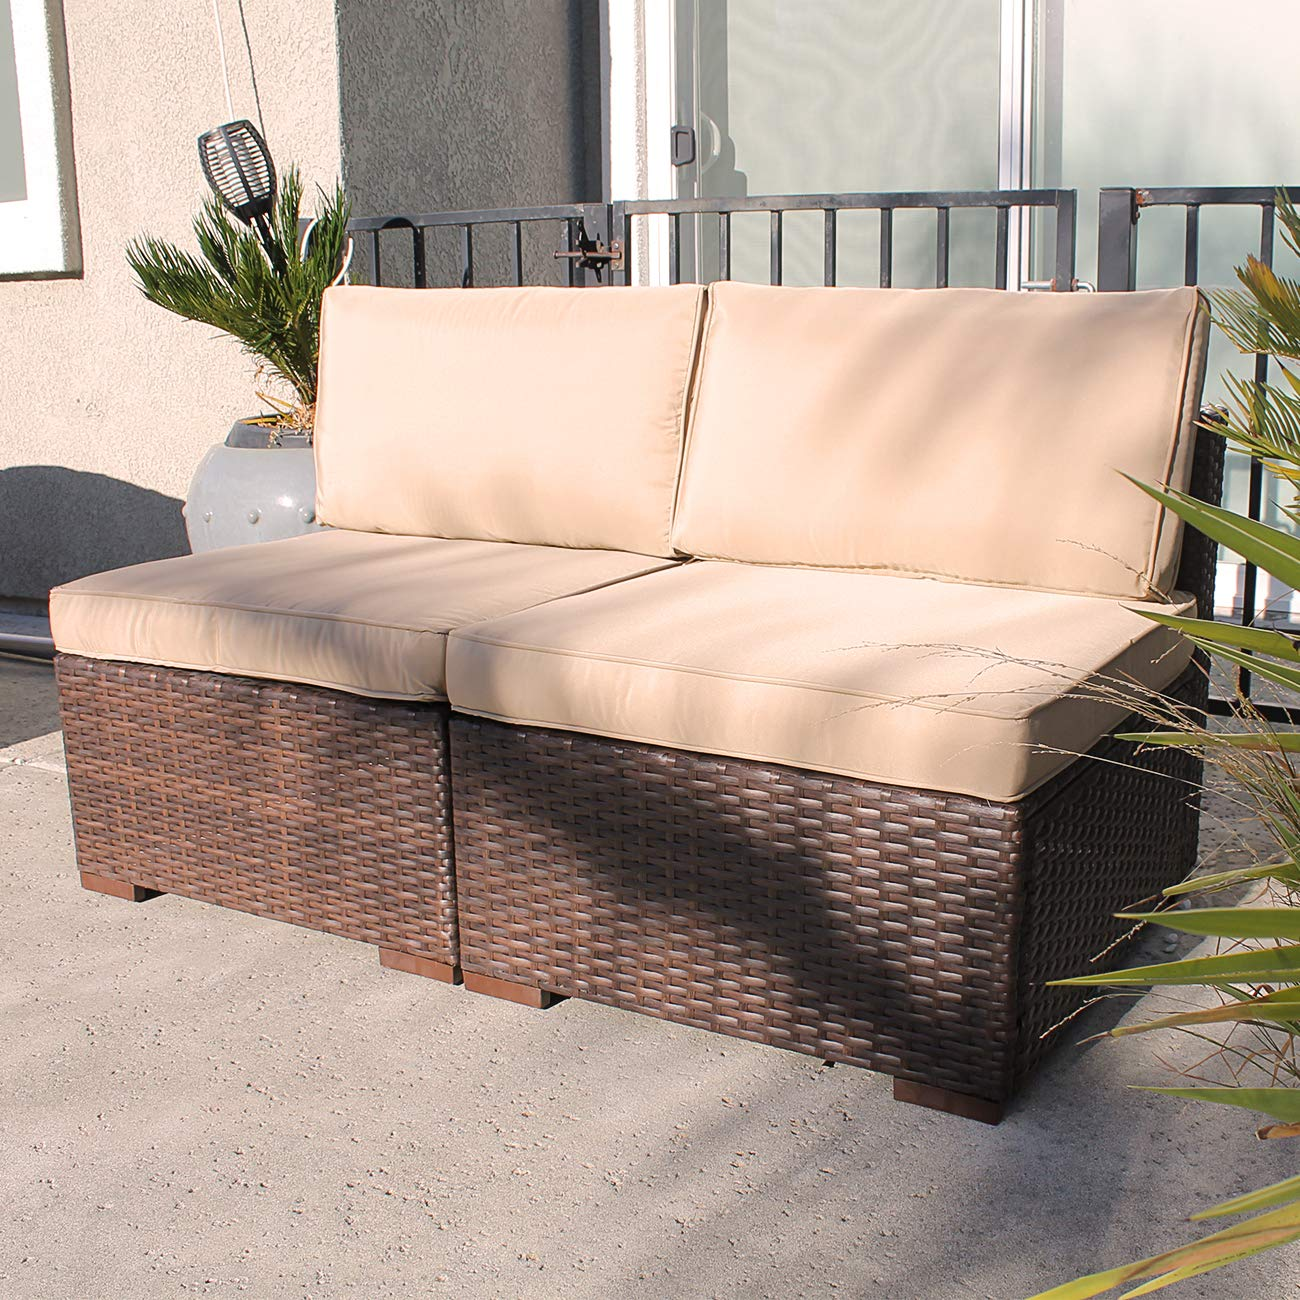 Patiorama Outdoor Loveseat, 2 Piece All Weather Brown Wicker Patio Chairs, Beige Velcro Cushion